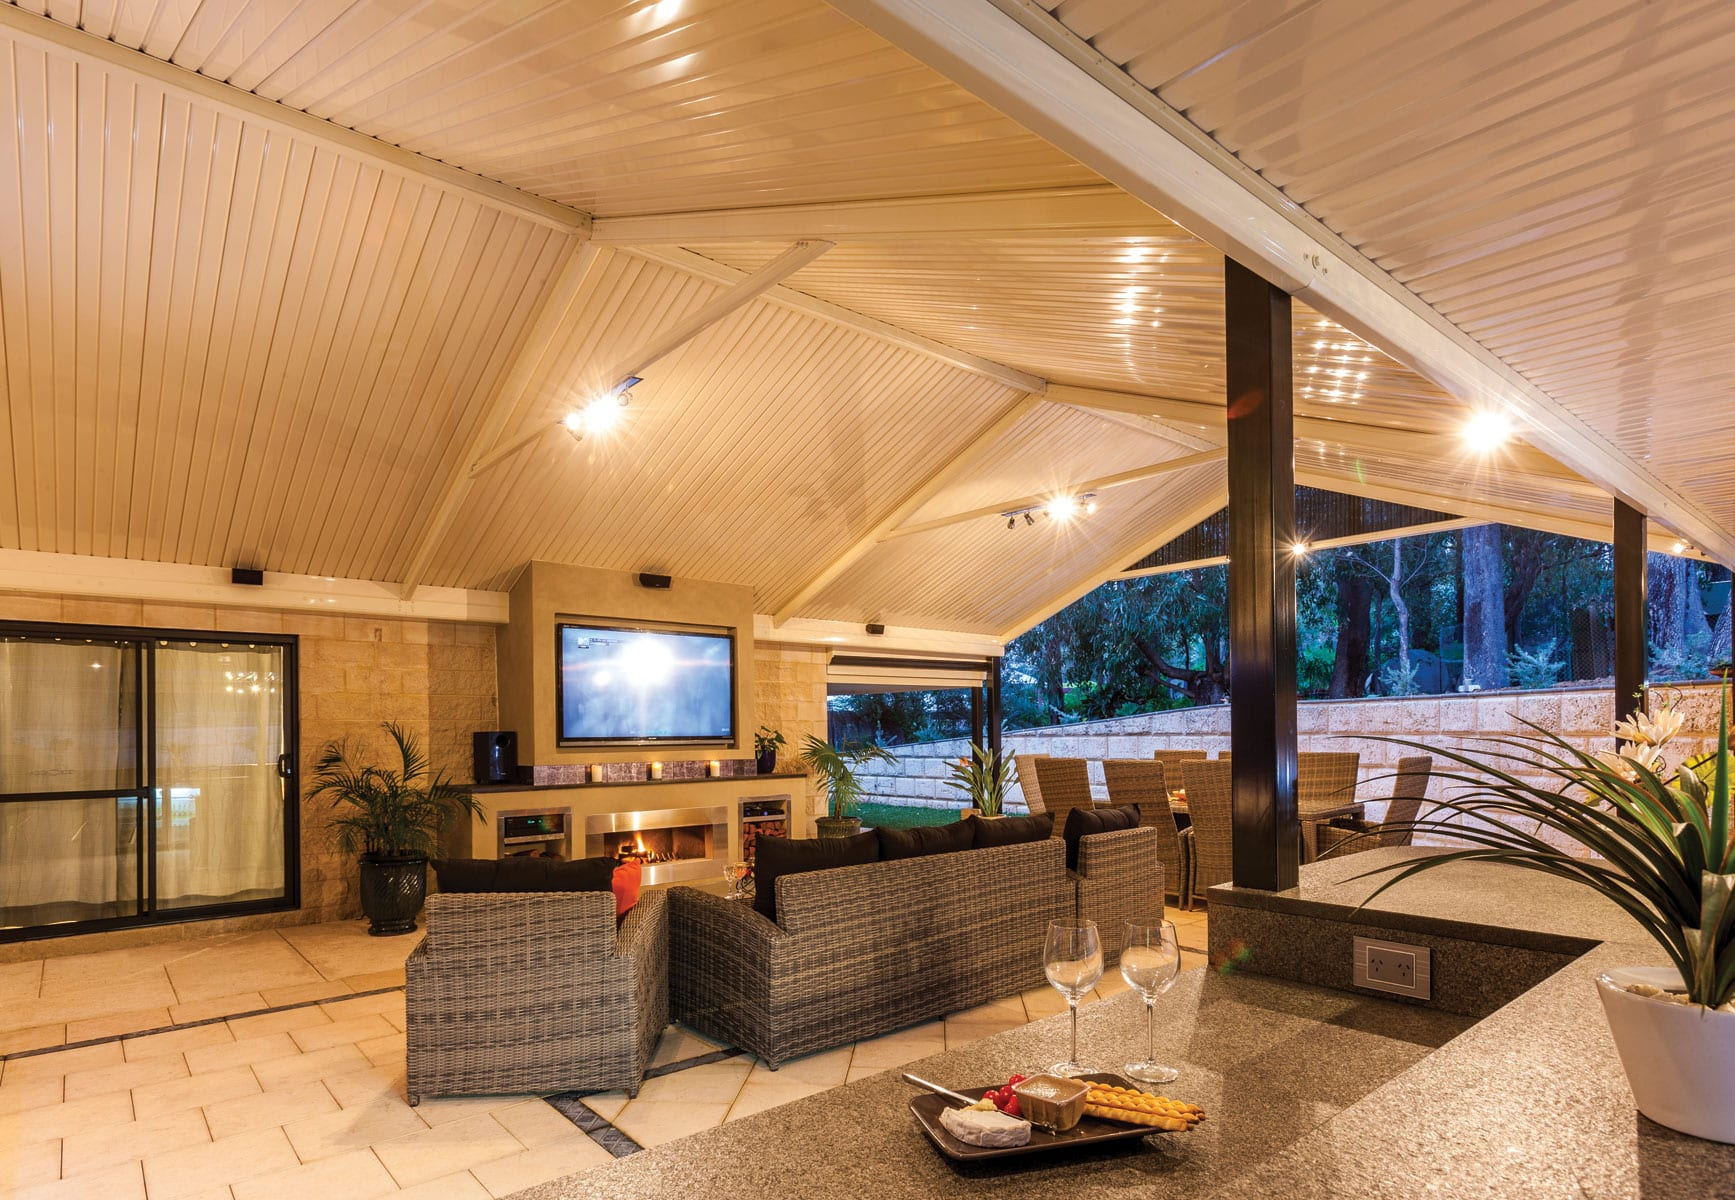 Patios Verandah Carport Outback Gable